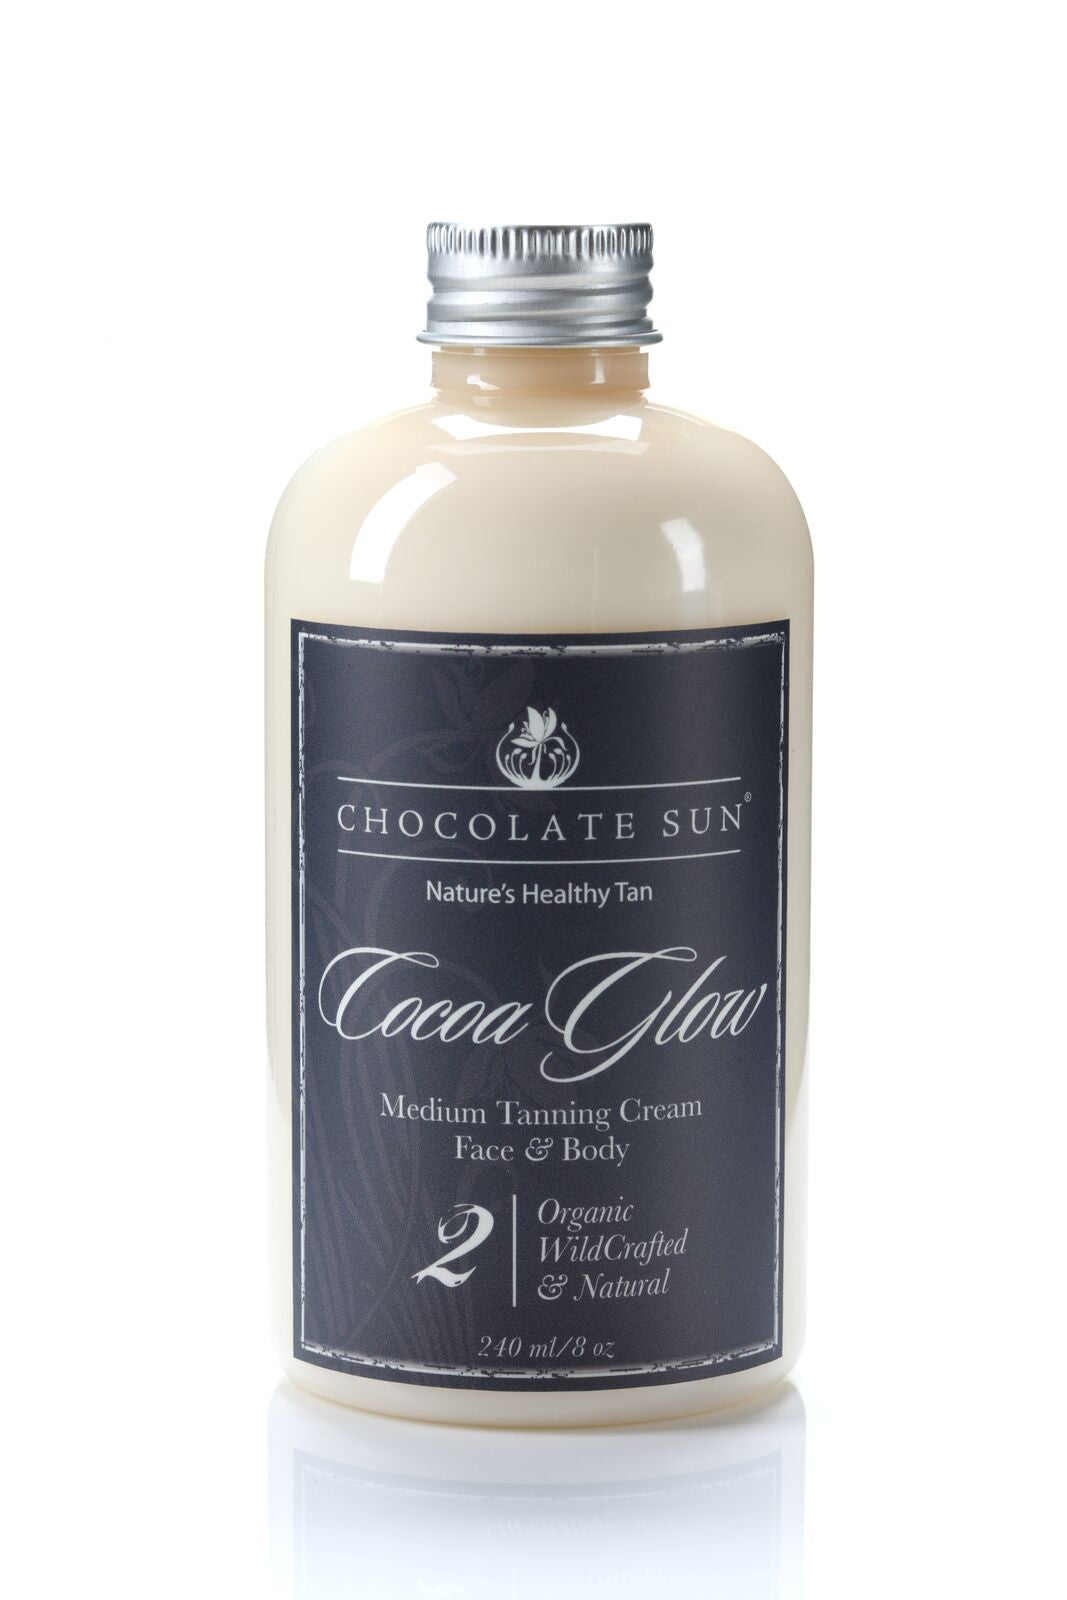 The Chocolate Sun COCOA GLOW TANNING CREAM FACE AND BODY